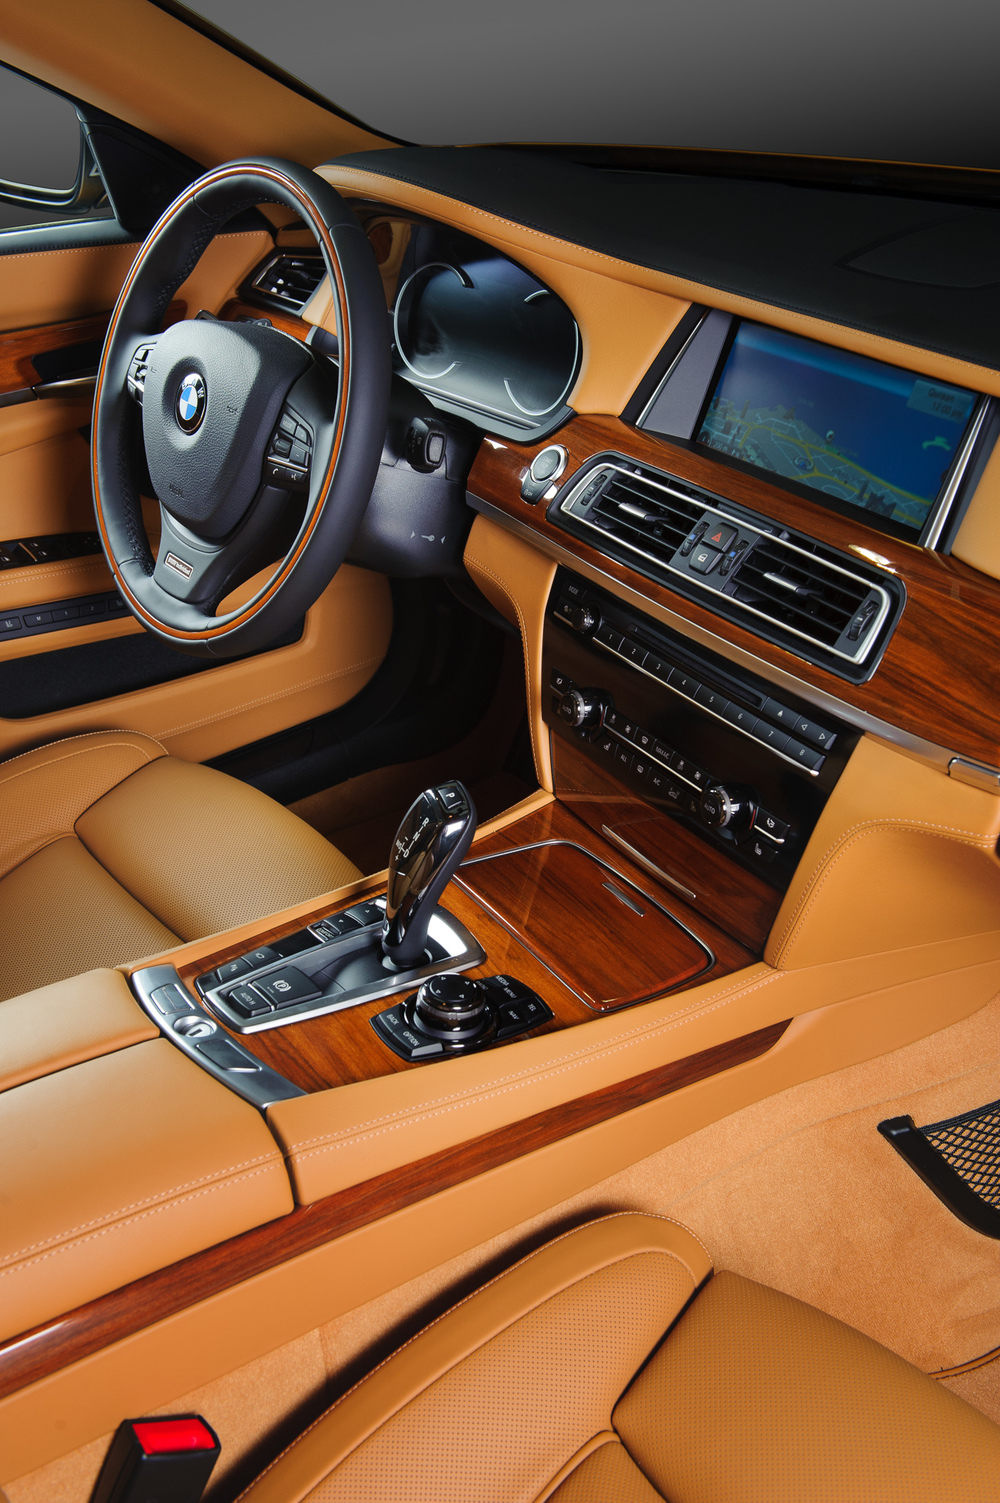 BMW_7series_Interior-003.jpg